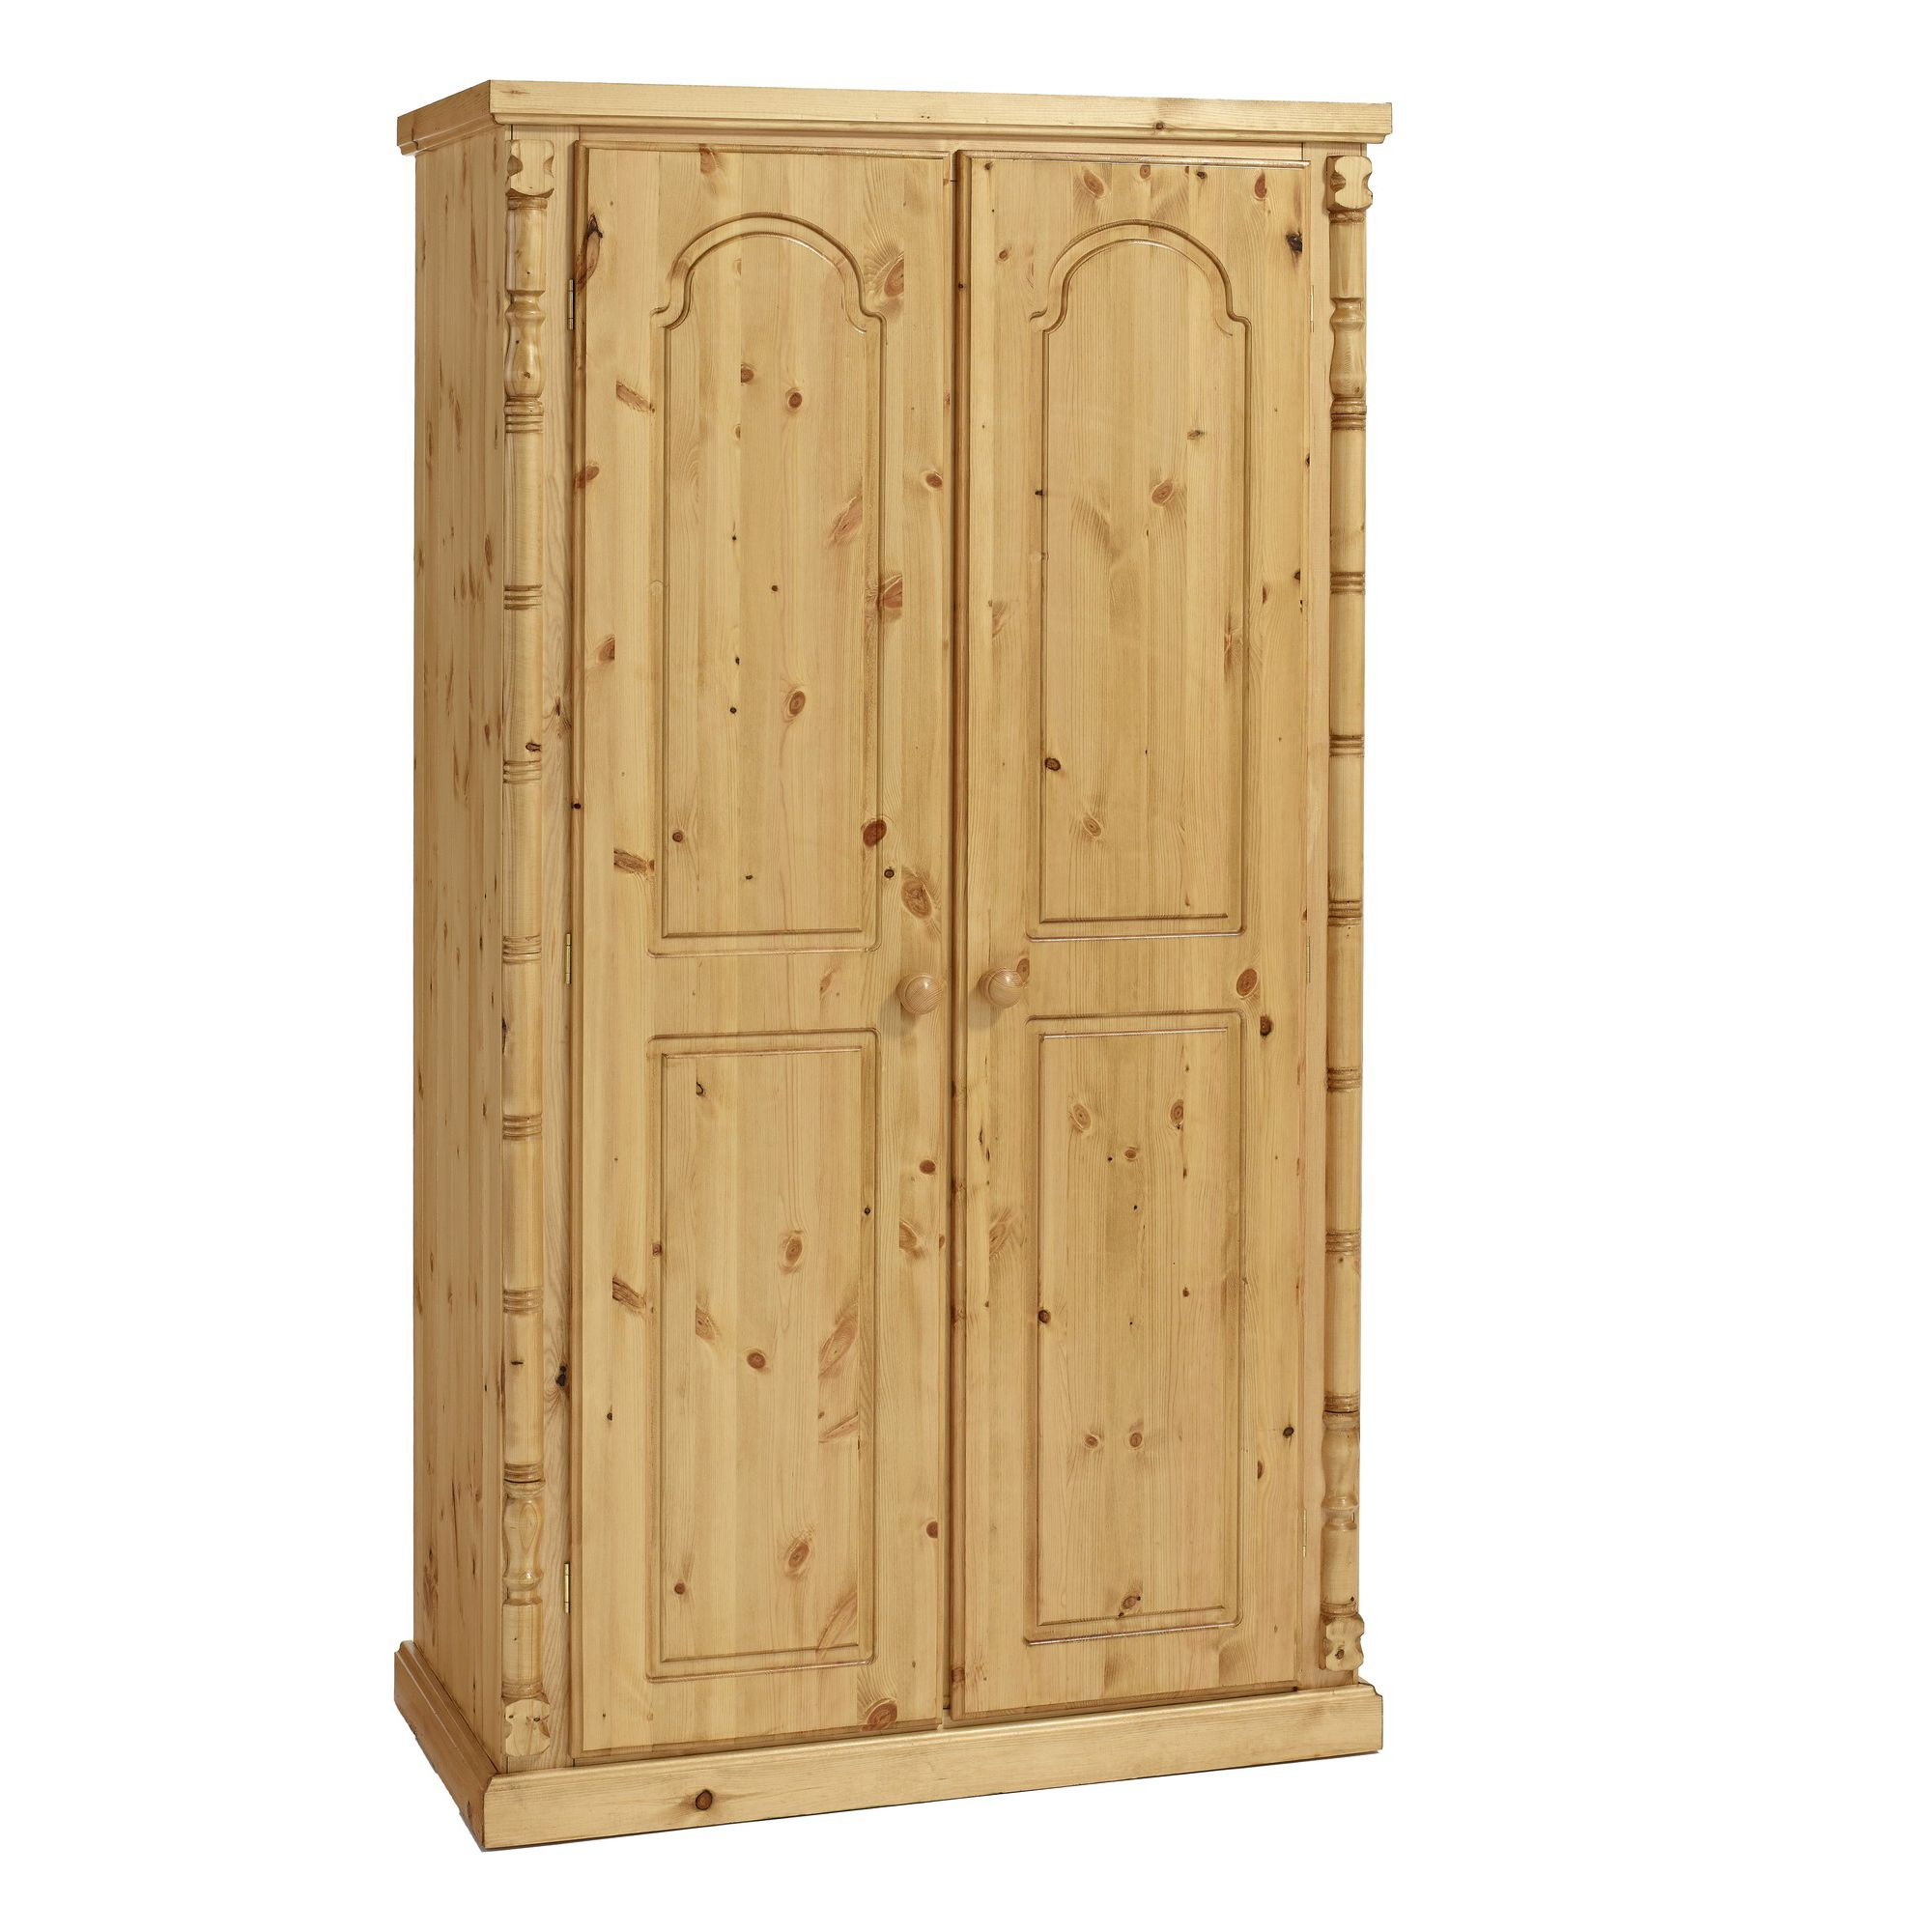 Ideal Furniture Ashley 2 Door Plain Wardrobe at Tesco Direct